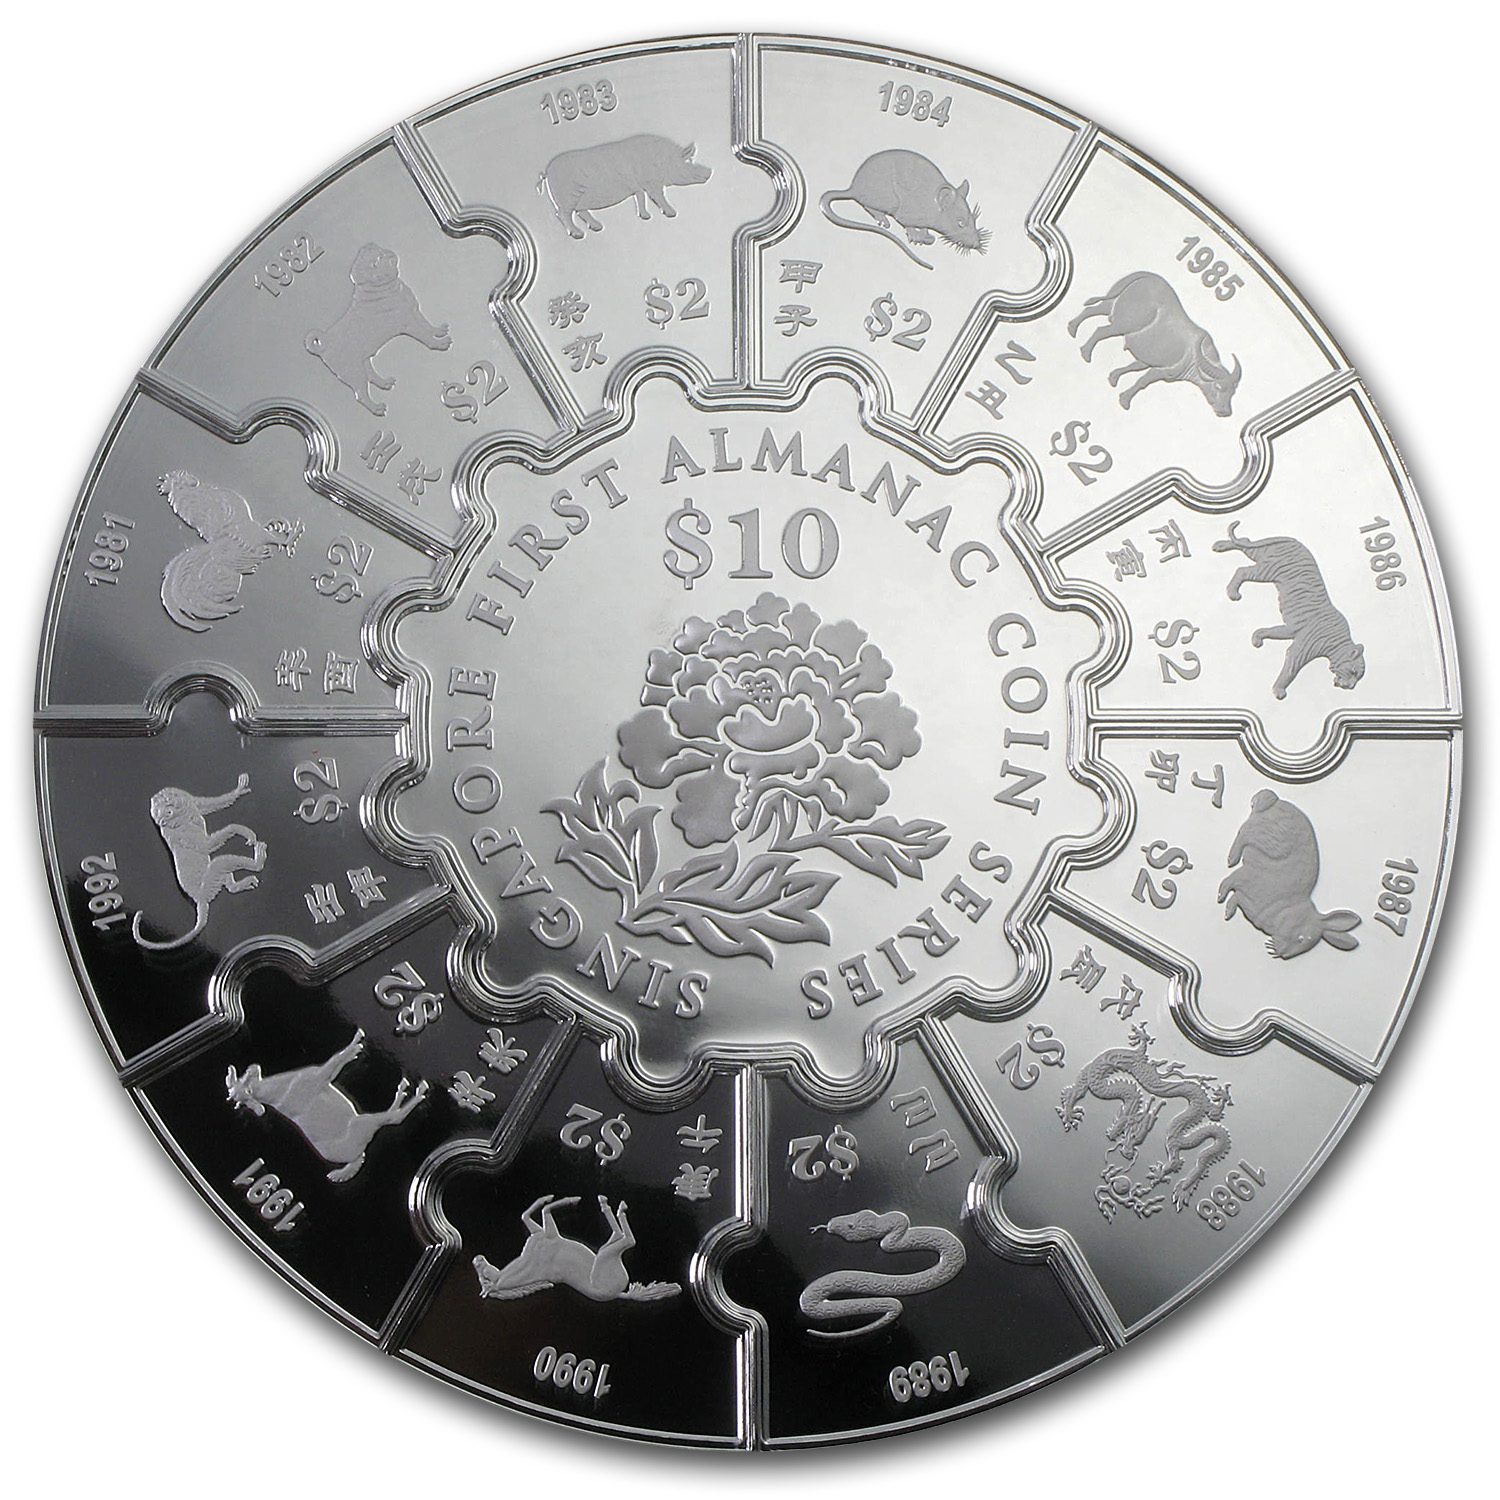 2014 Singapore 13-in-1 8 oz Silver Puzzle Proof-Like Set